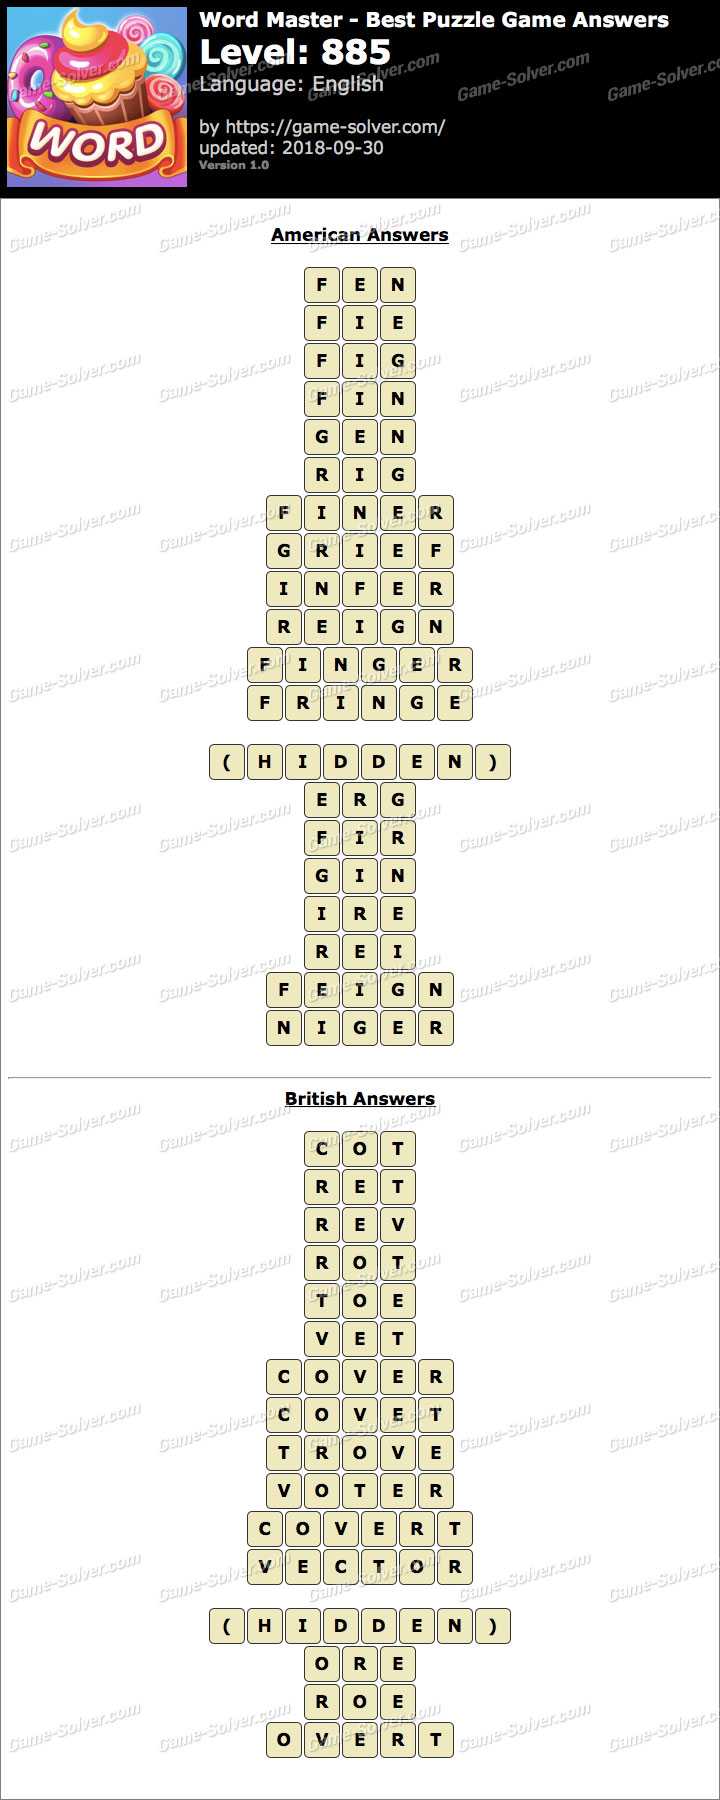 Word Master-Best Puzzle Game Level 885 Answers